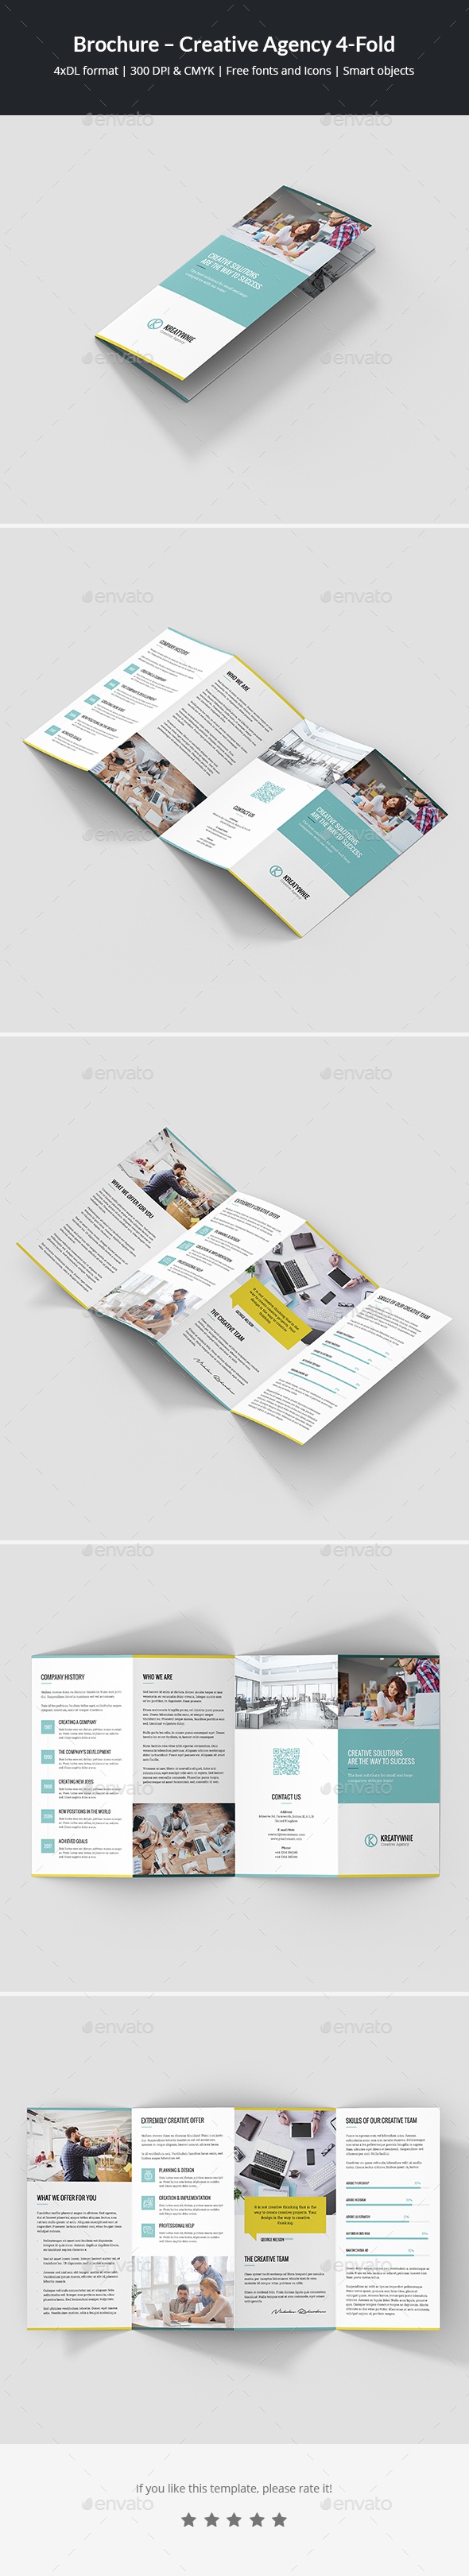 Brochure – Creative Agency 4-Fold - Corporate Brochures